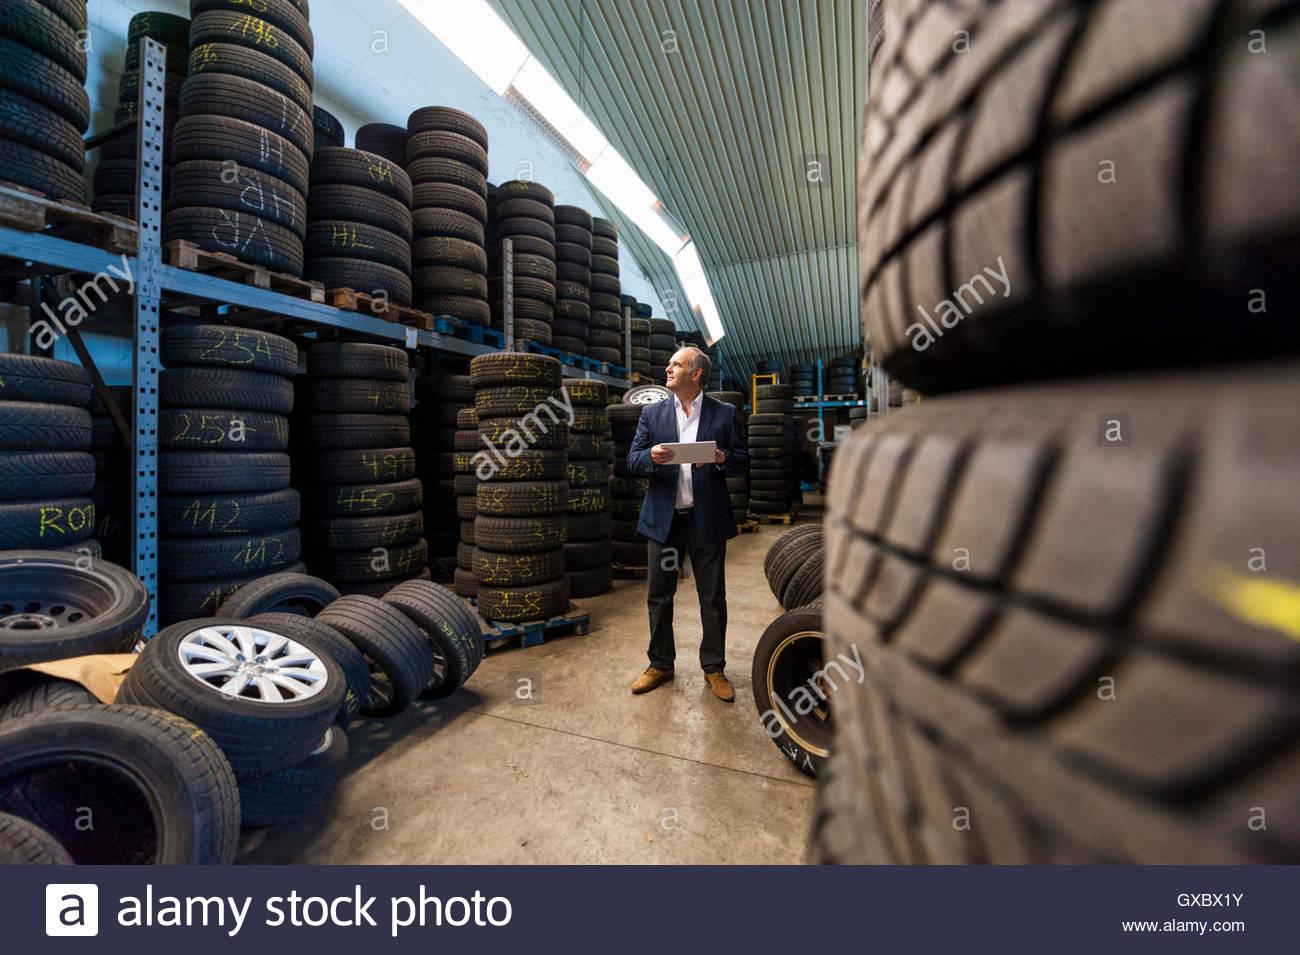 Senior business owner with digital tablet counting stacked tyres in garage - Stock Image